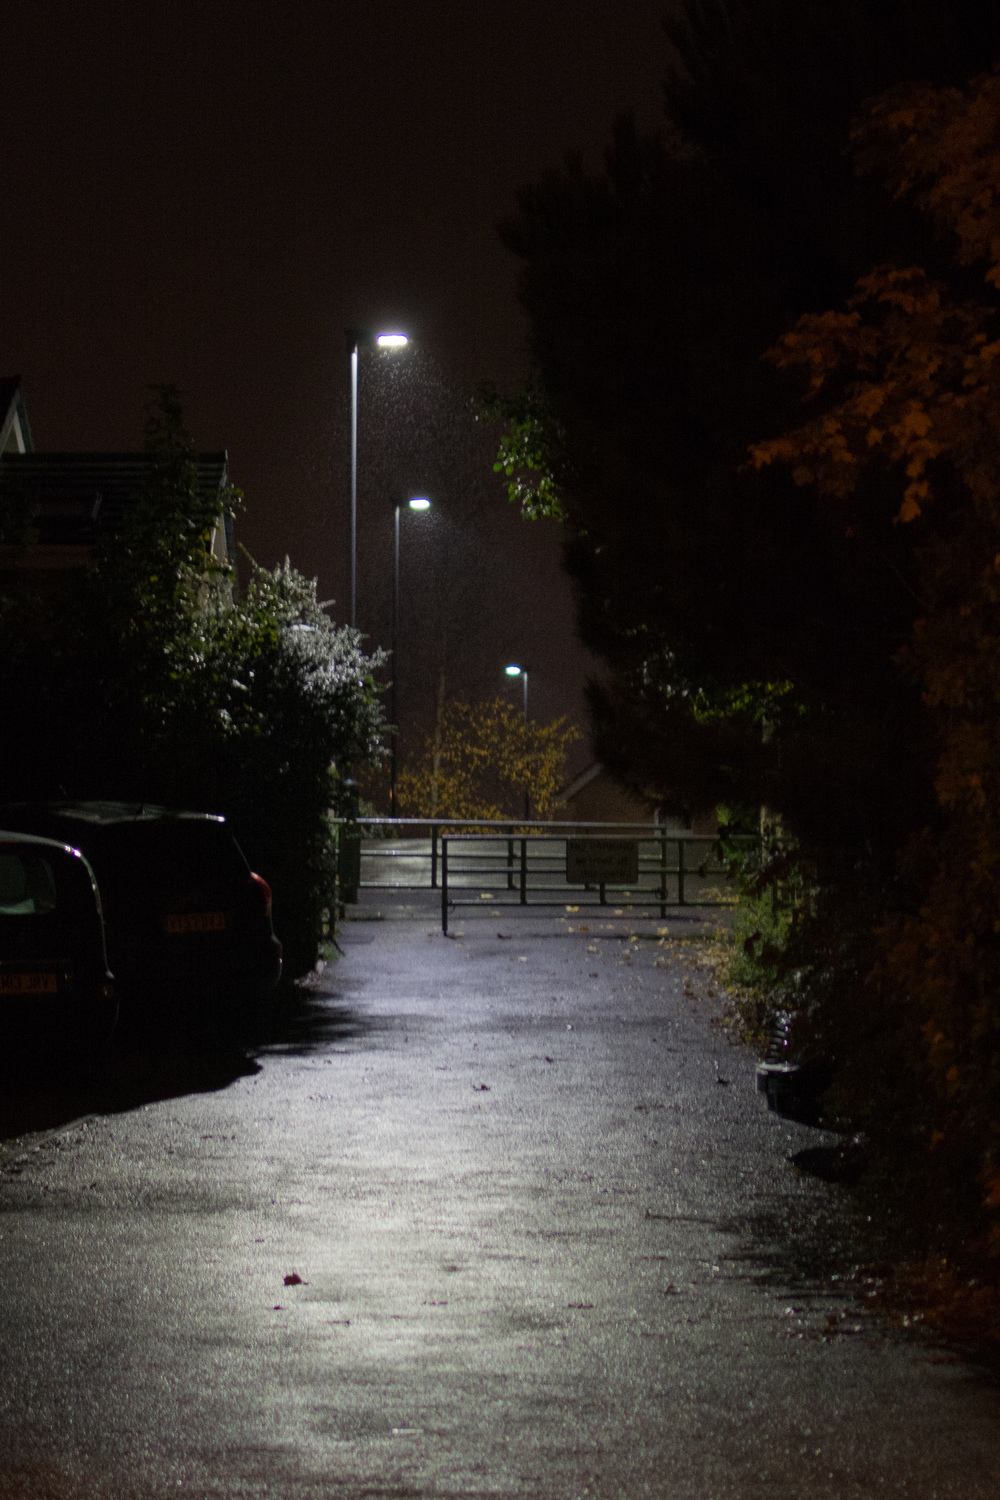 ISO 800 * 1/30s * 35mm * f/1.8 Streetlights in the rain. This image is quite significantly cropped.